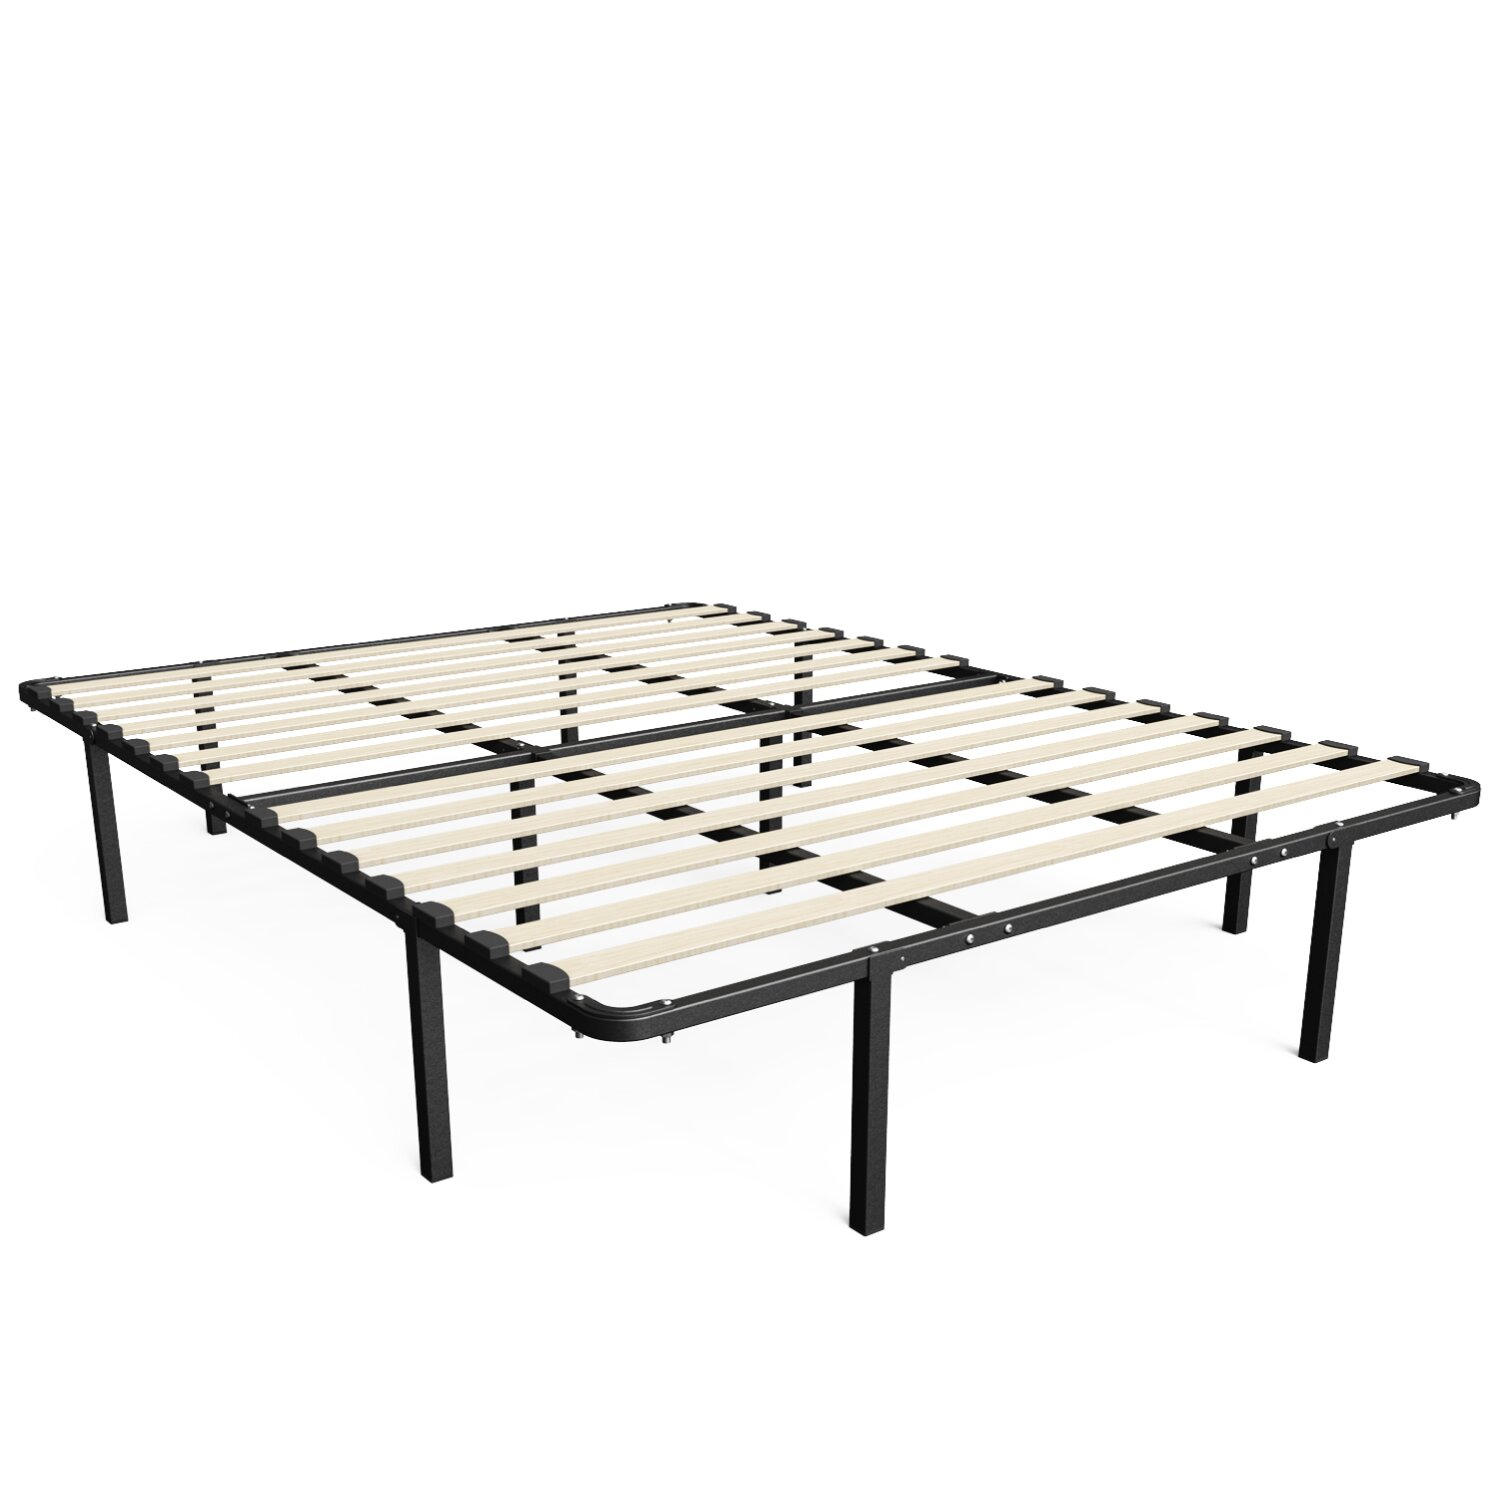 OrthoTherapy MyEuro SmartBase Mattress Foundation Platform